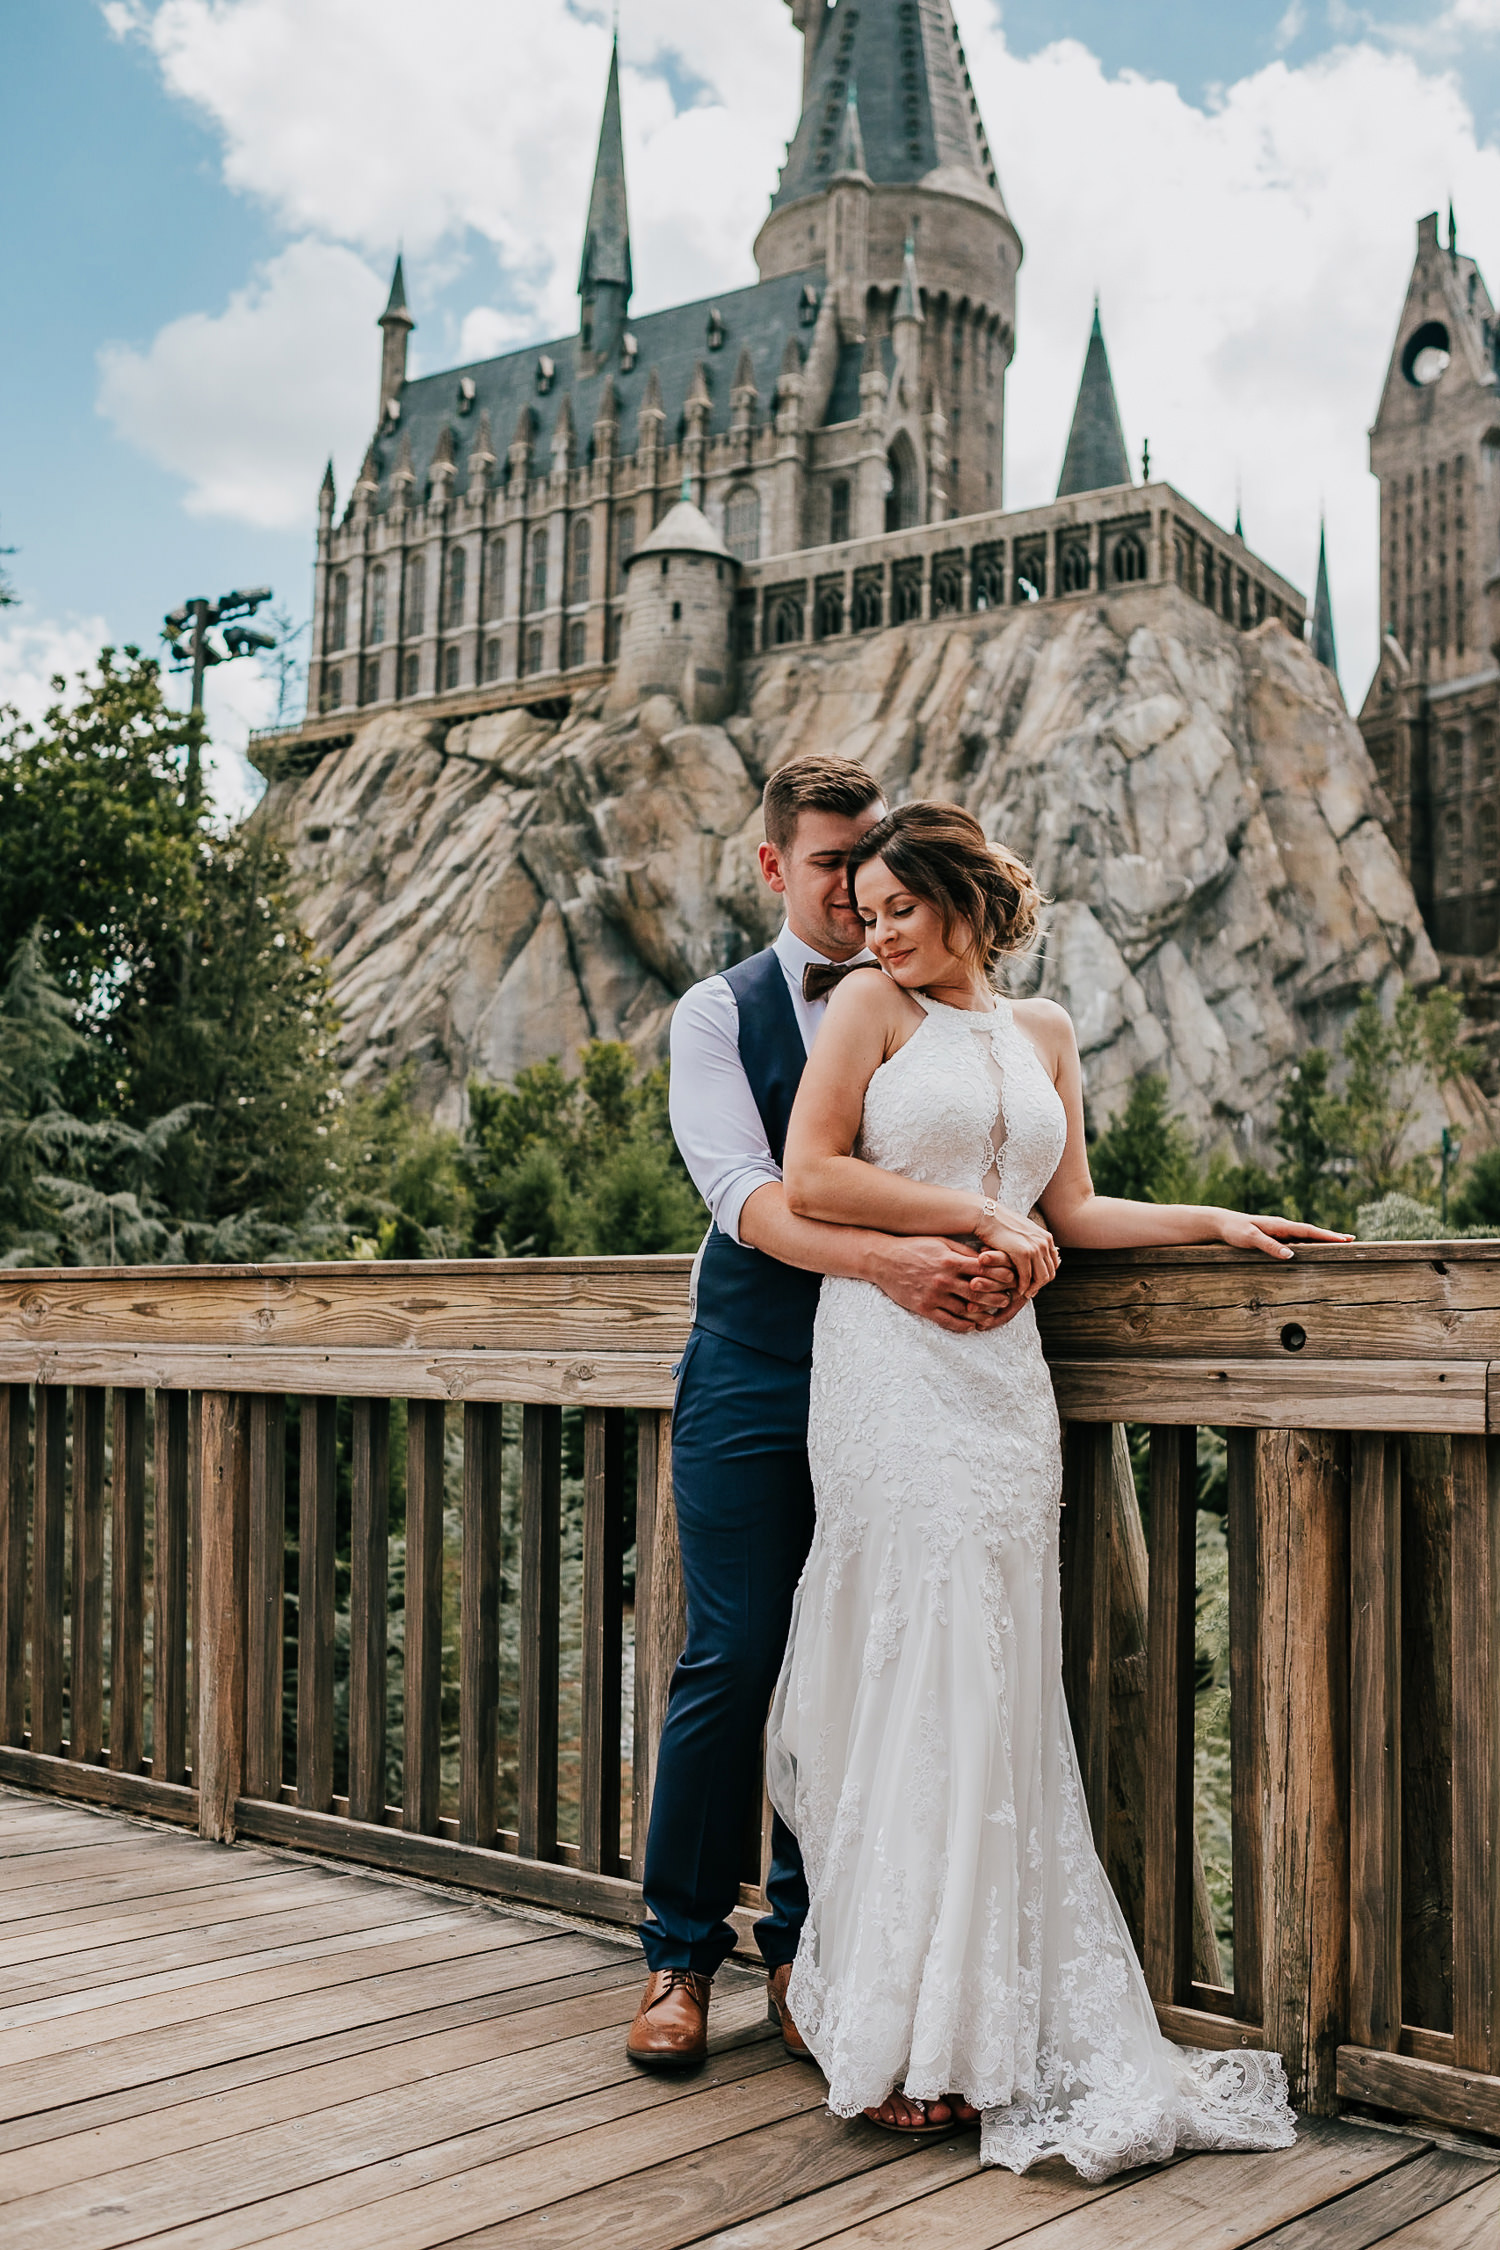 groom hugging bride from behind with hogwarts castle in background